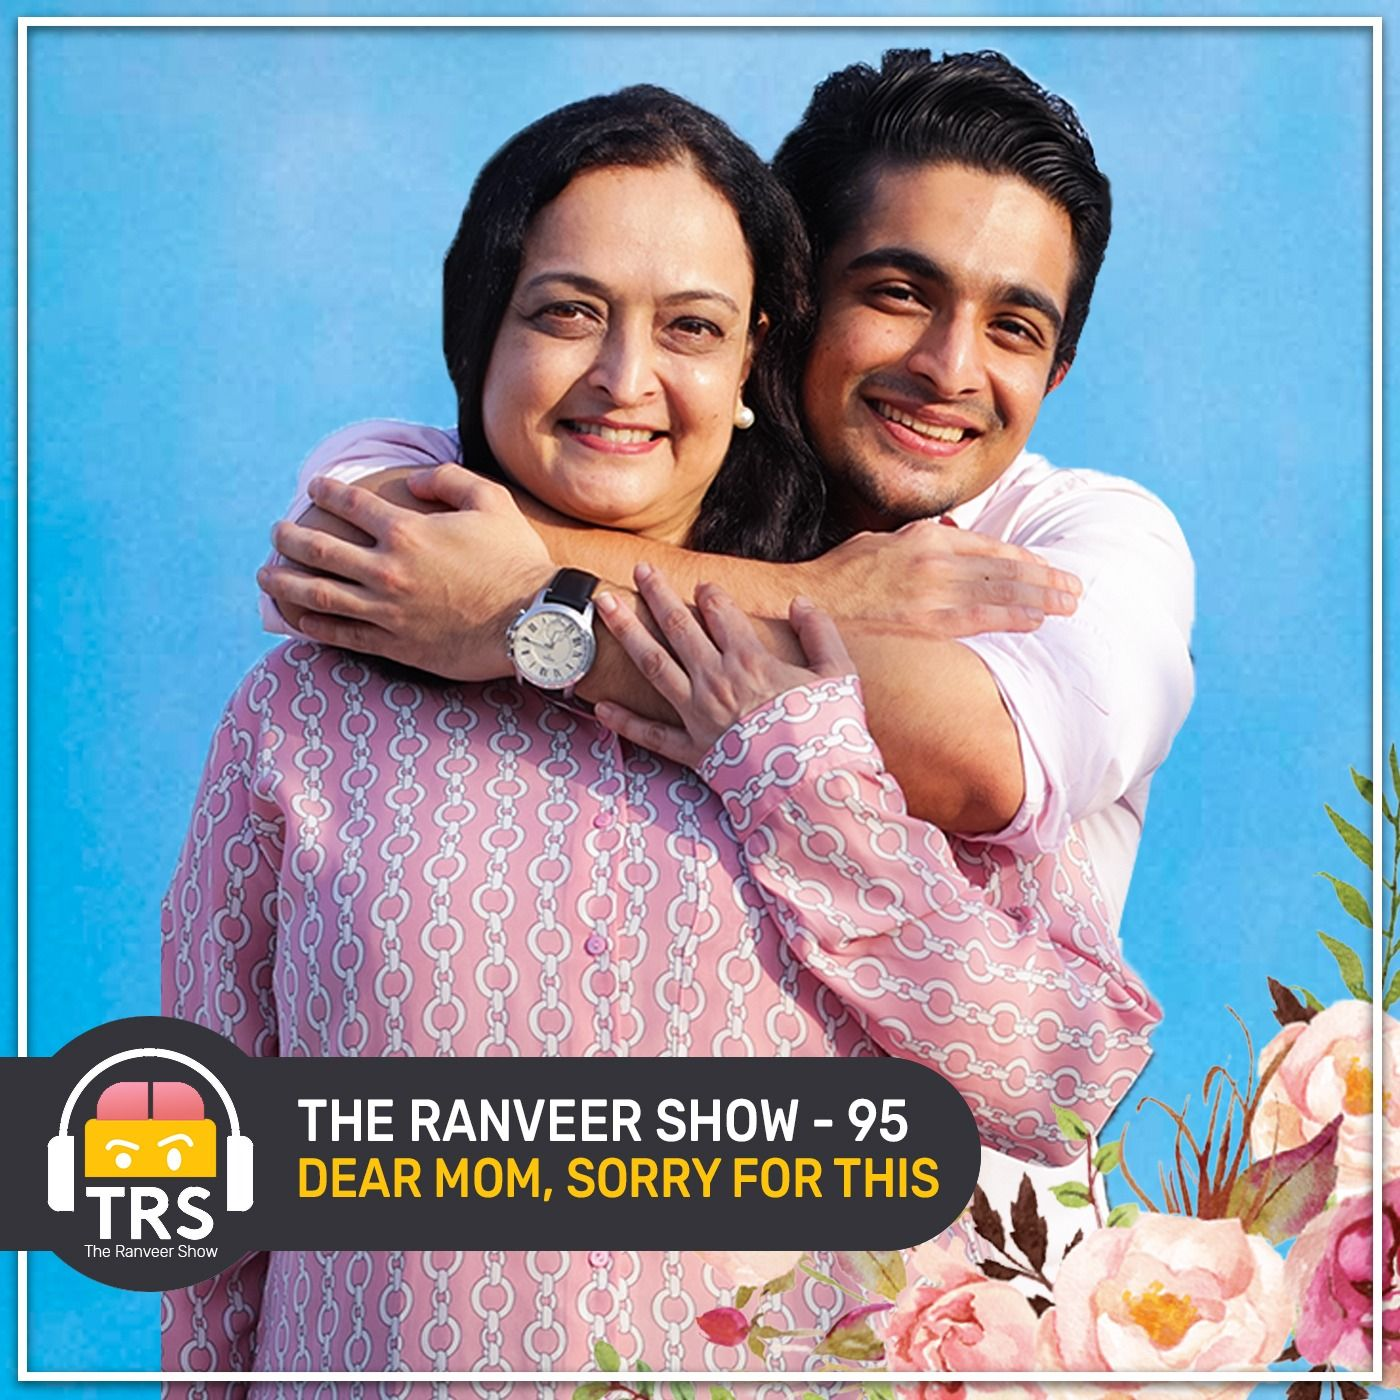 To All INDIAN WOMEN - Here's Our Gift To You | The Ranveer Show 95